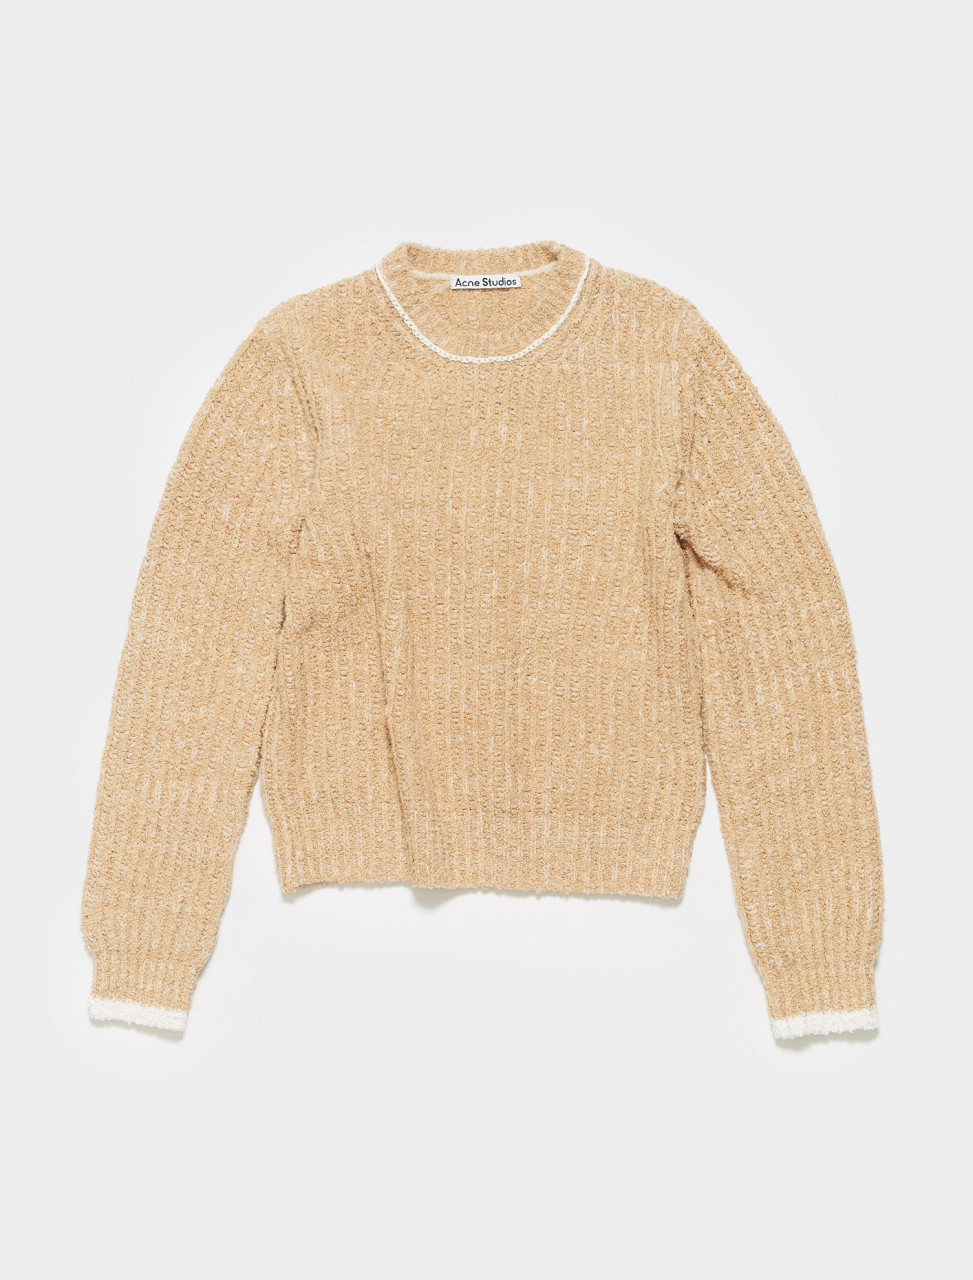 A60254-AE2 ACNE STUDIOS KERIS TEXTURE RIB KNIT IN WARM BEIGE